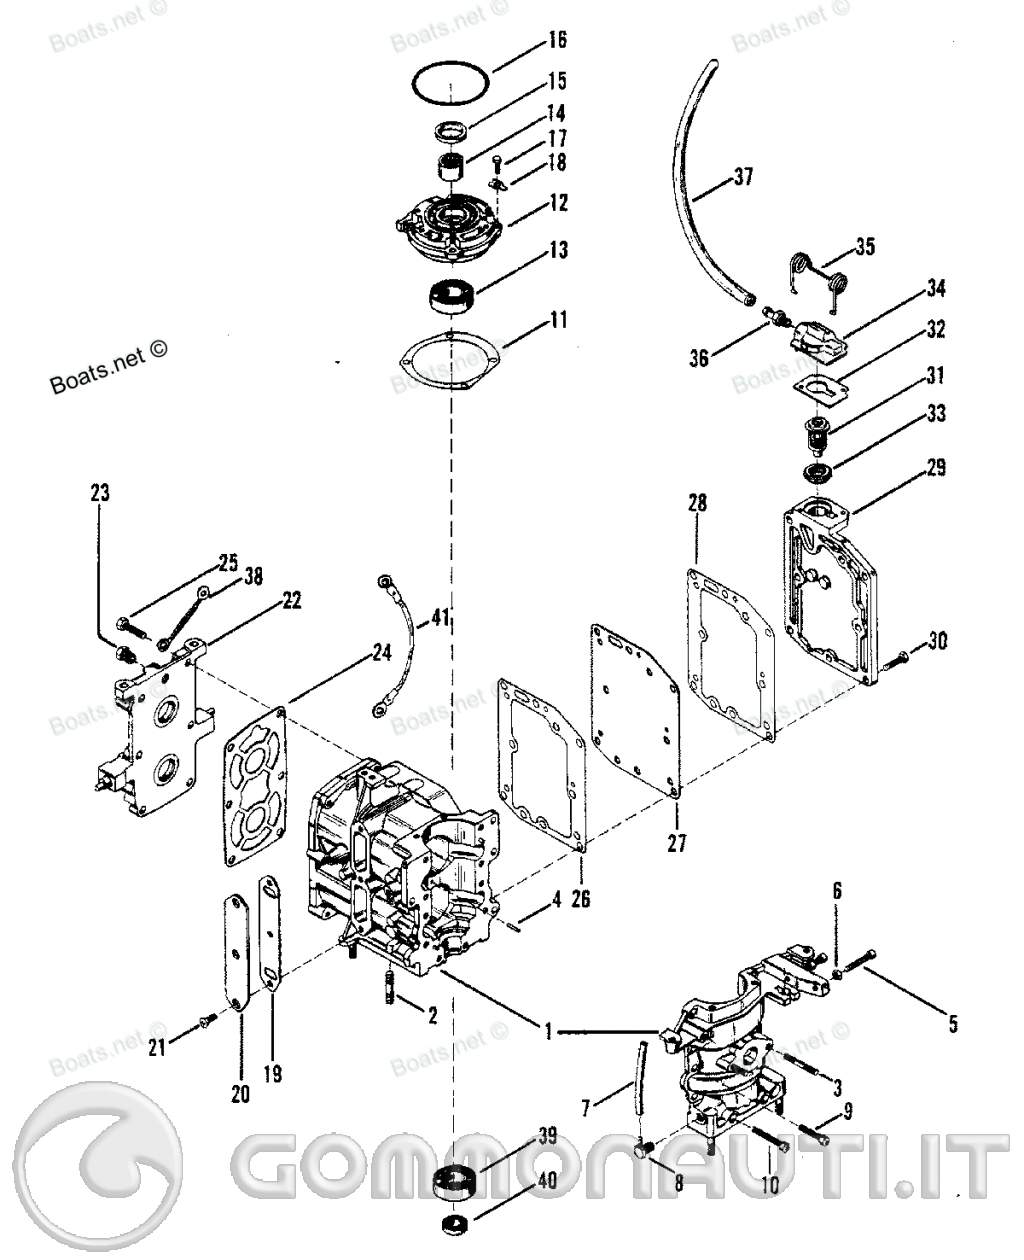 10 Hp Honda Outboard Parts Diagram Honda Auto Wiring Diagram